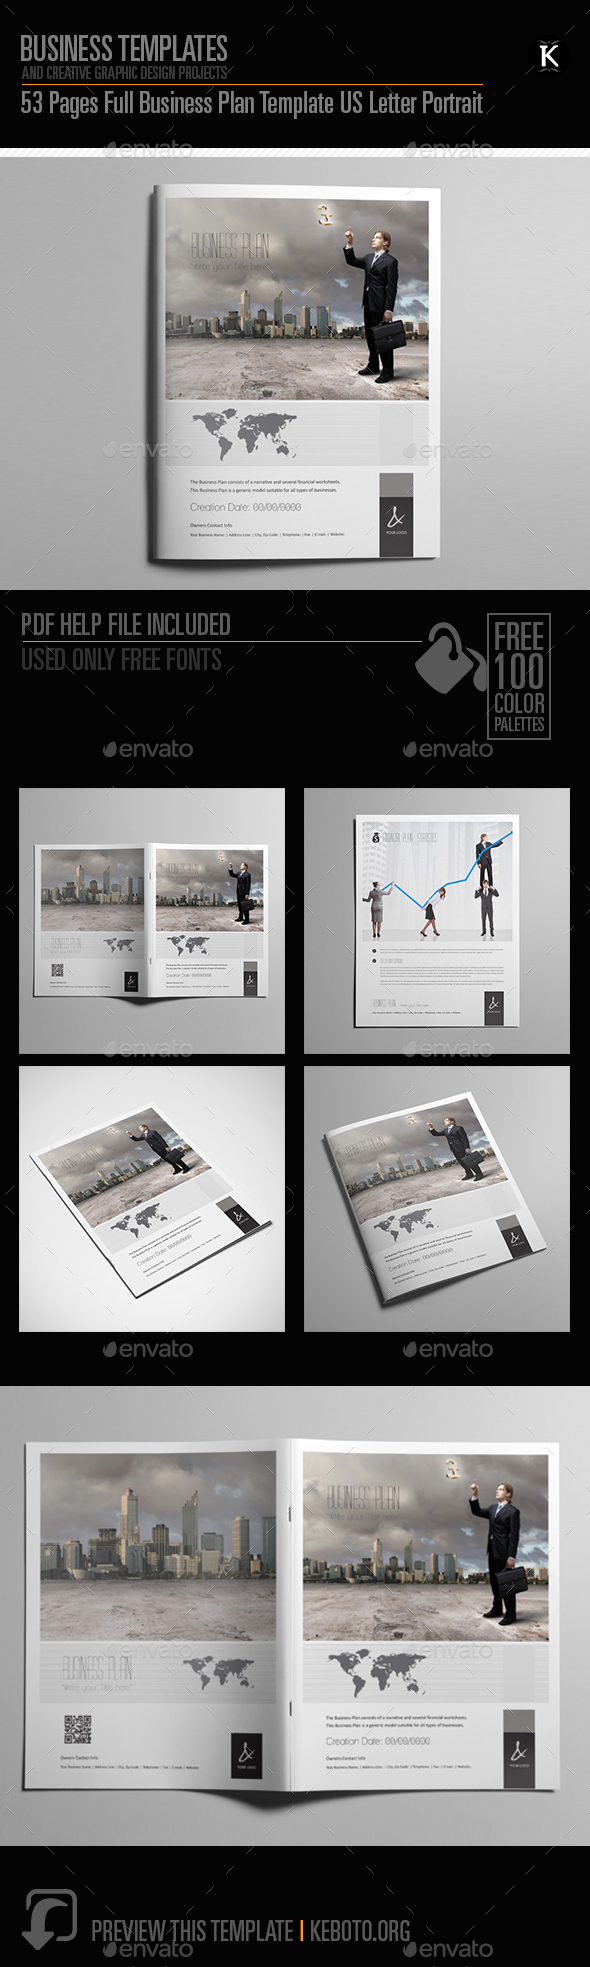 Business plan template pages graphics designs templates cheaphphosting Images